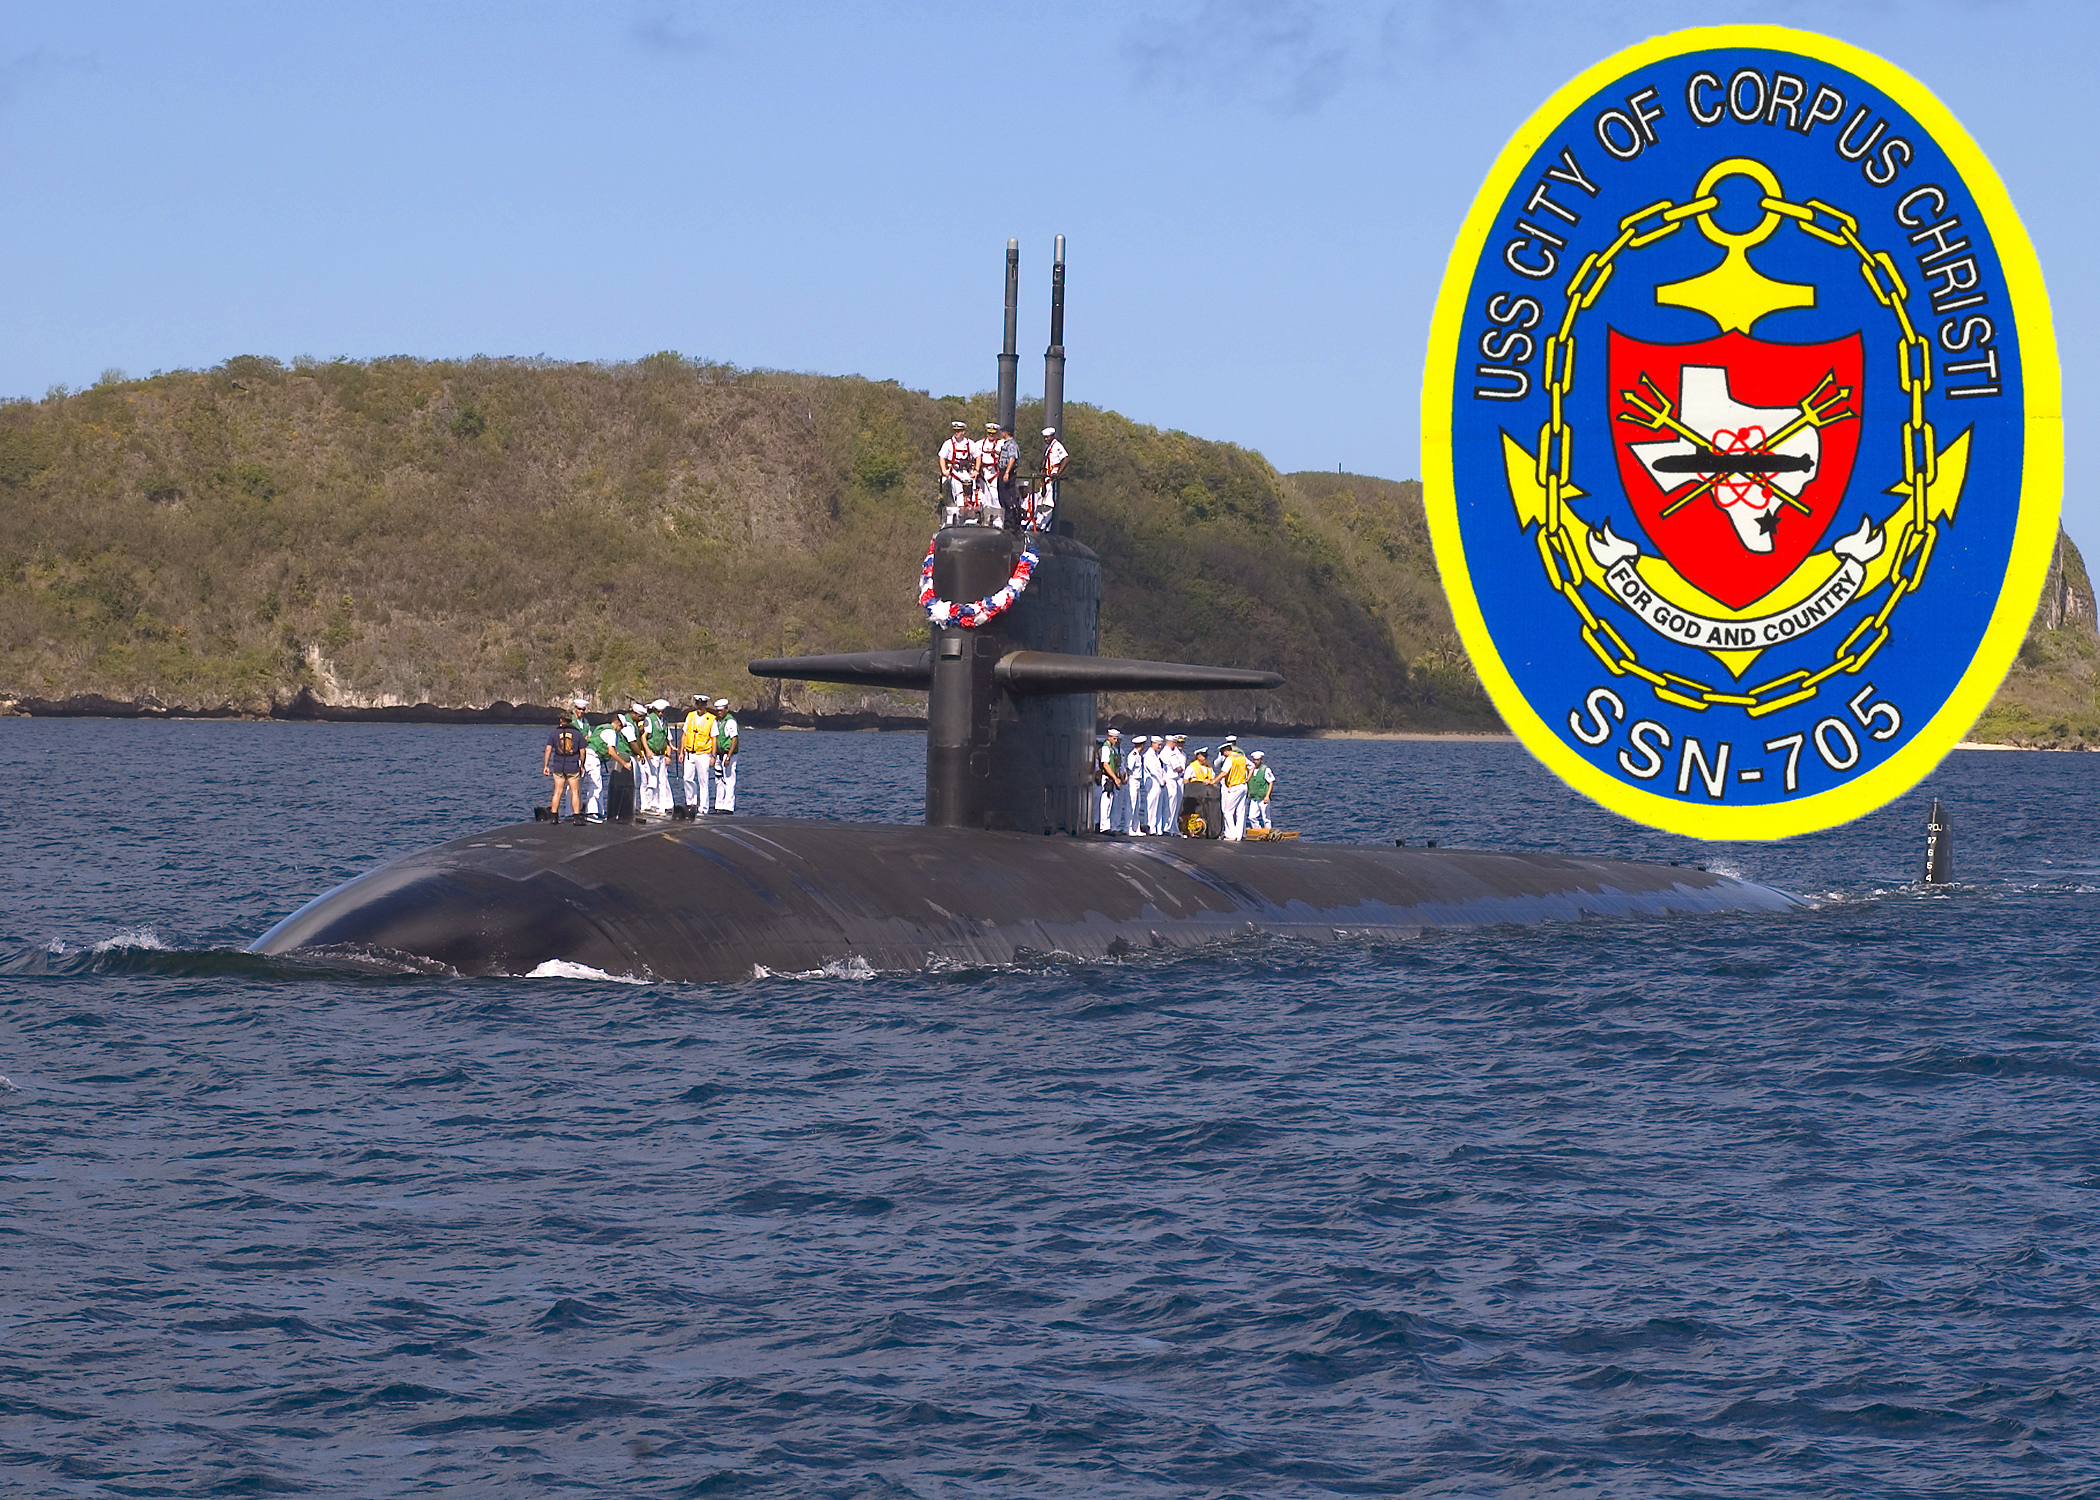 USS CITY OF CORPUS CHRISTI SSN-705 Bild und Grafik: U.S. Navy